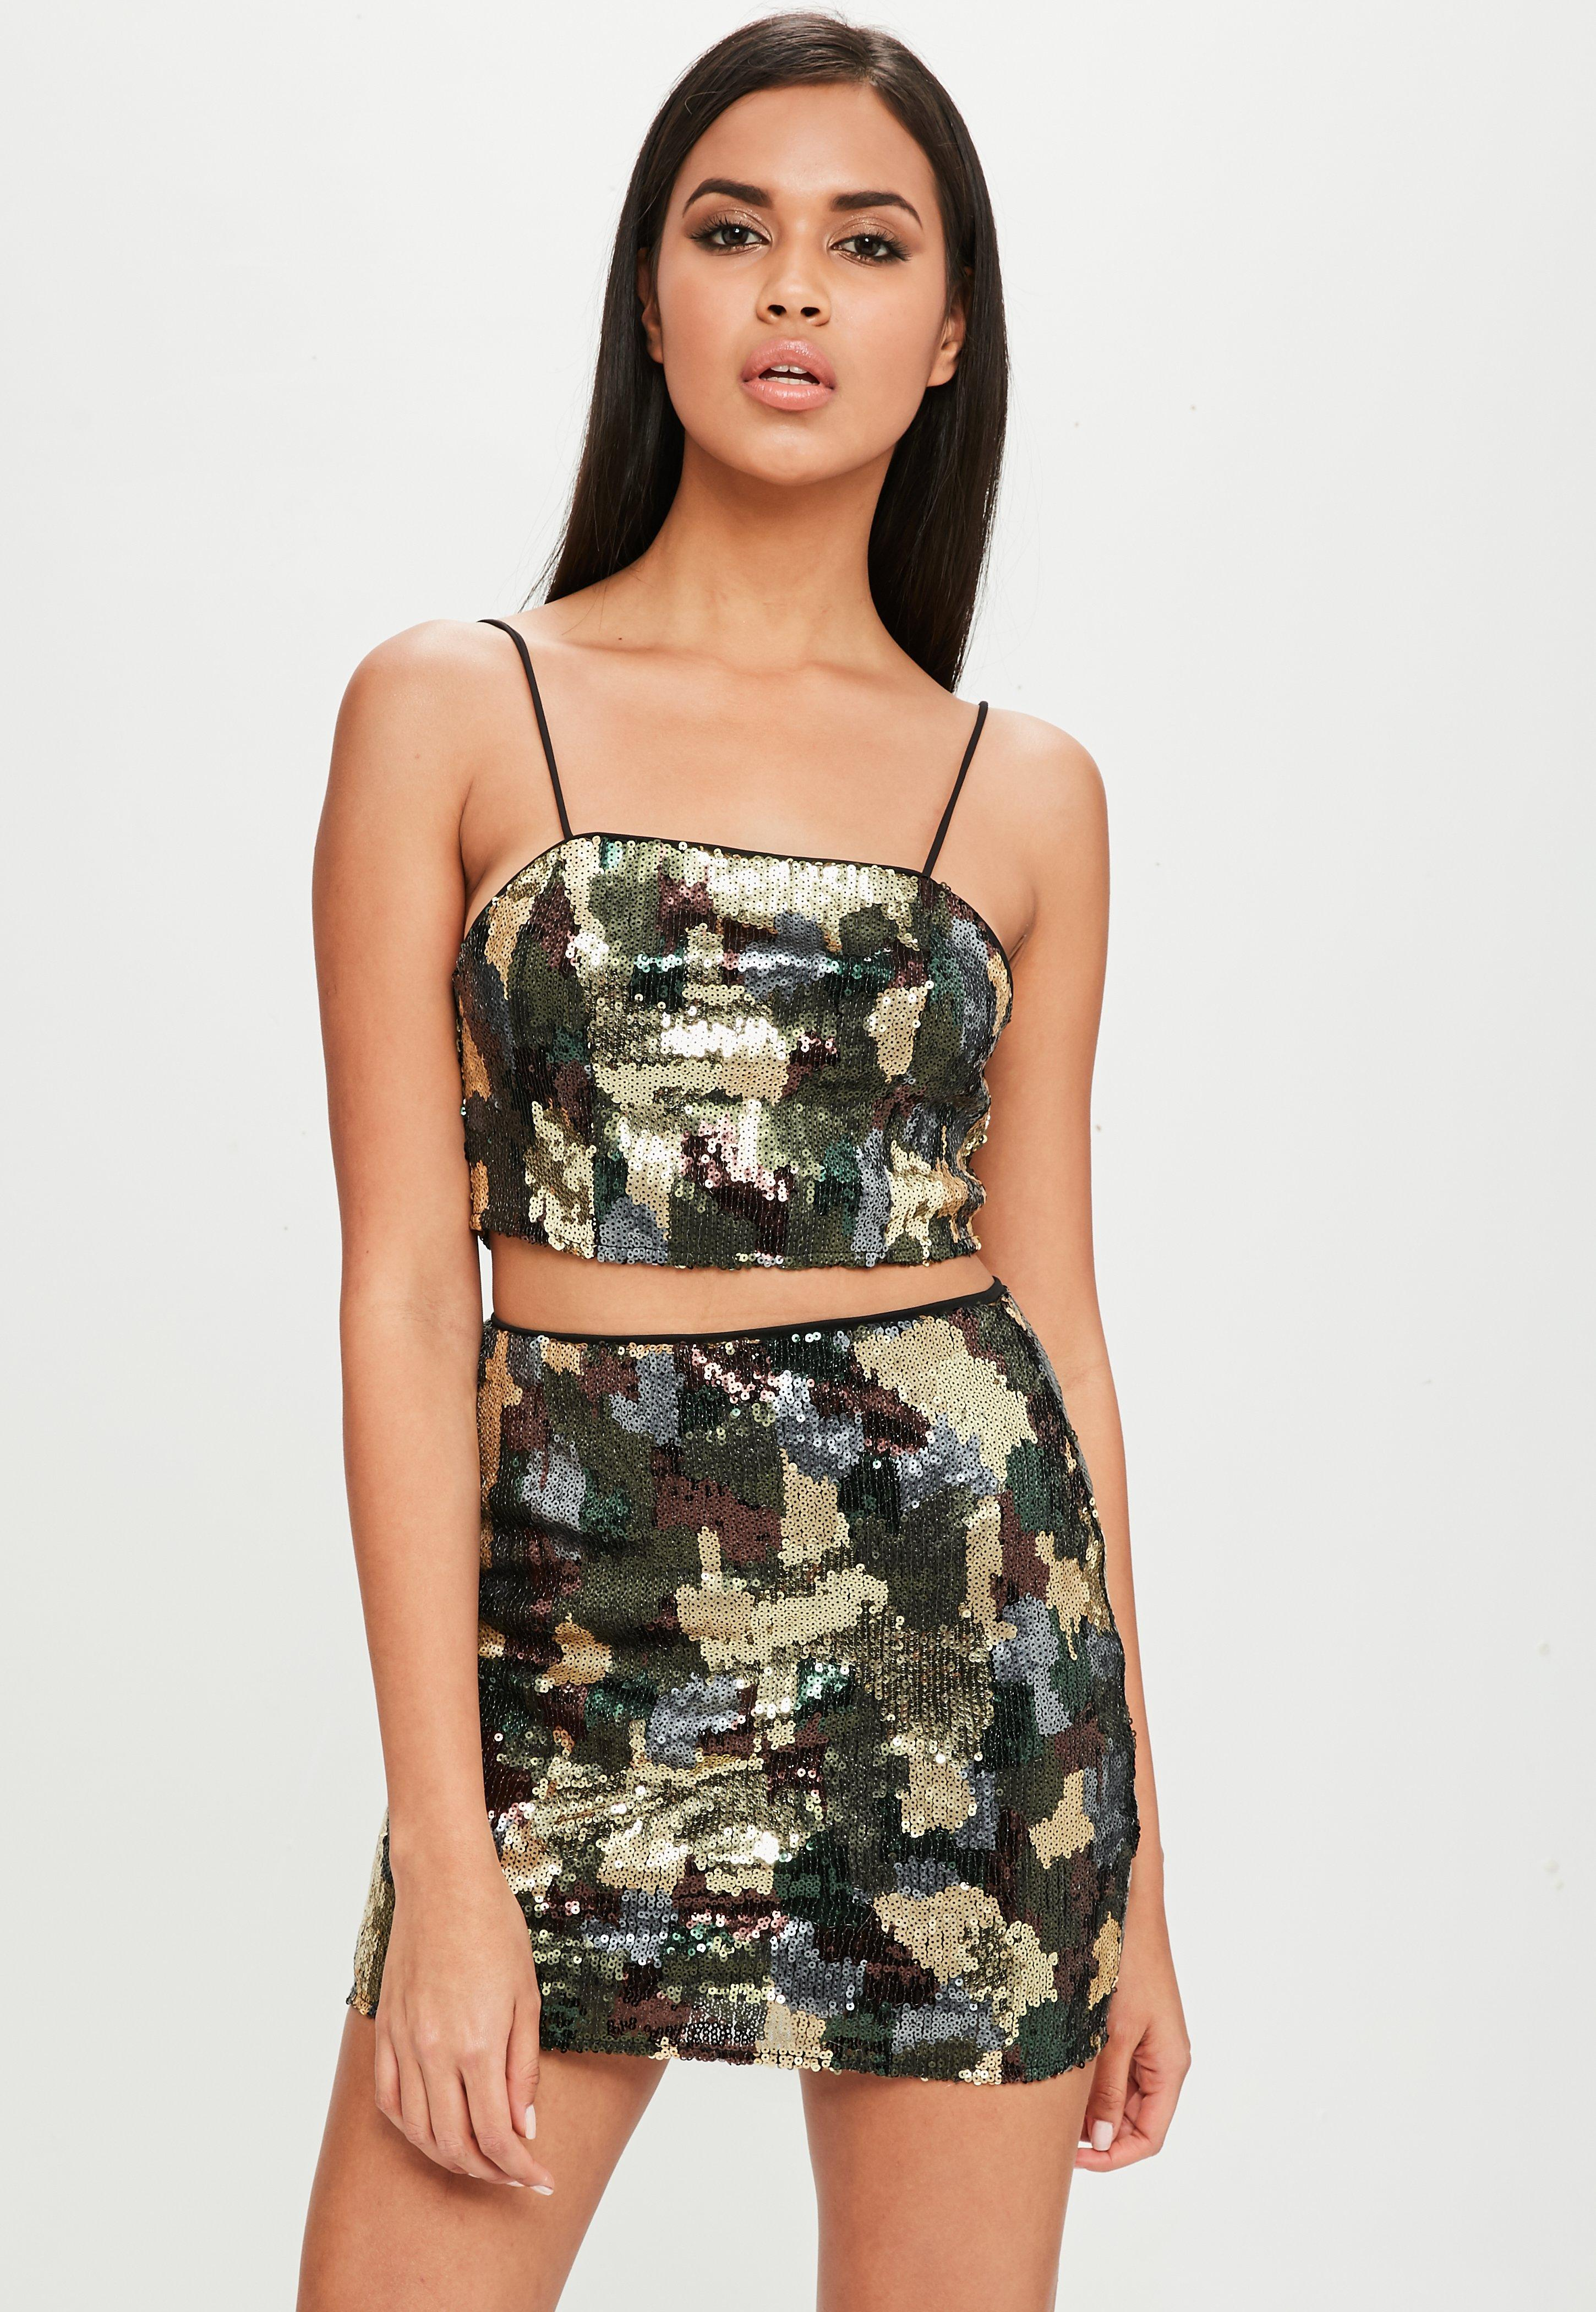 Lyst missguided carli bybel x green camo sequin skirt in for Green camo shirt outfit